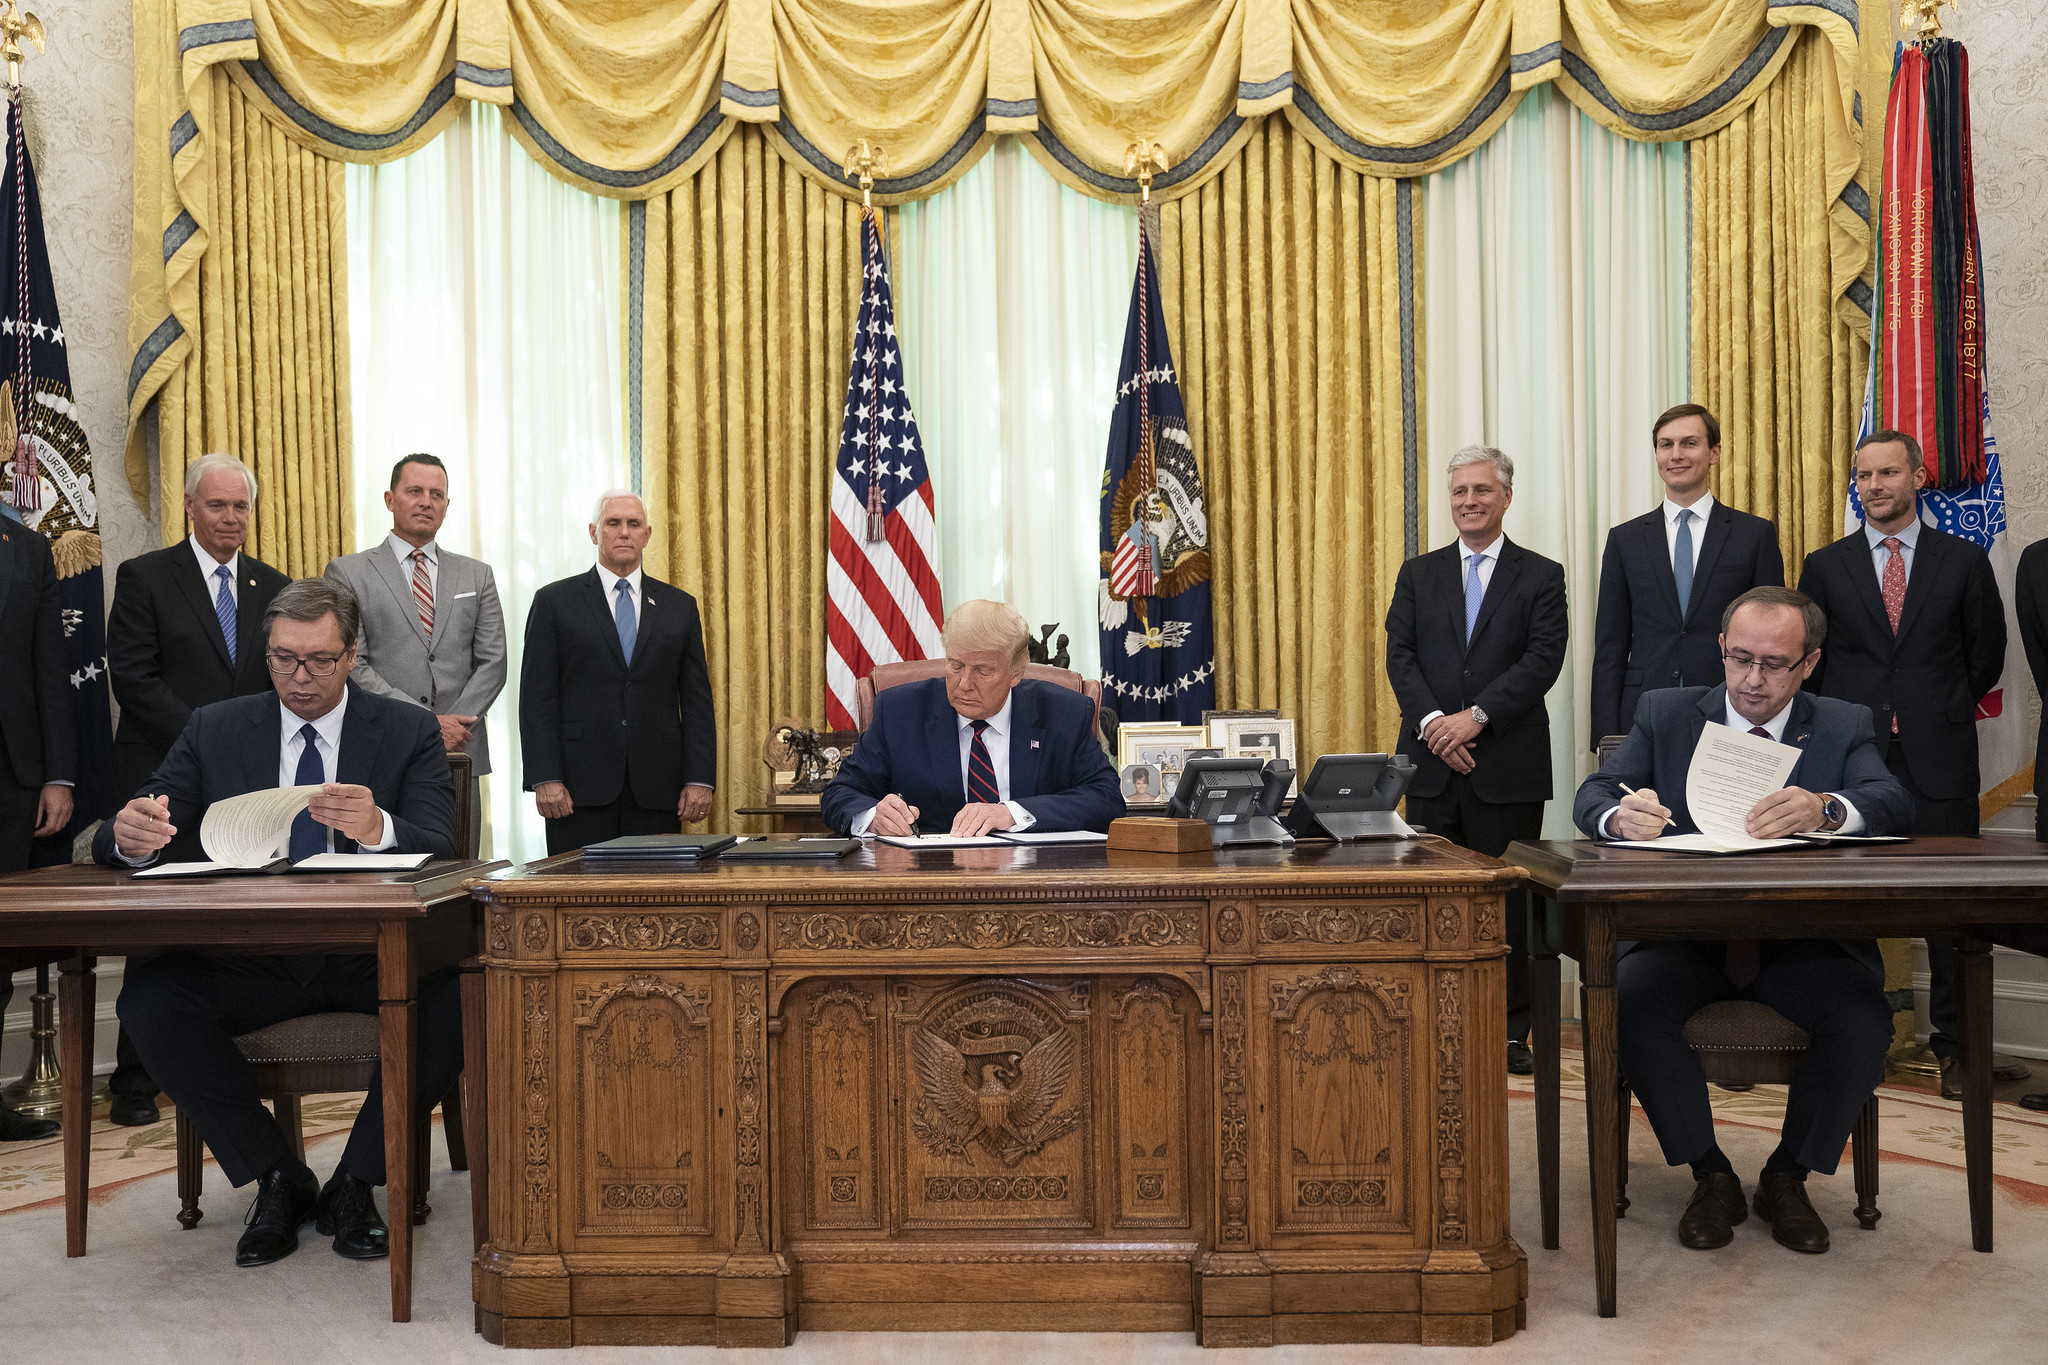 Kosovo-Serbia Summit at the White House: What was it all about? - New  Eastern Europe - A bimonthly news magazine dedicated to Central and Eastern  European affairs